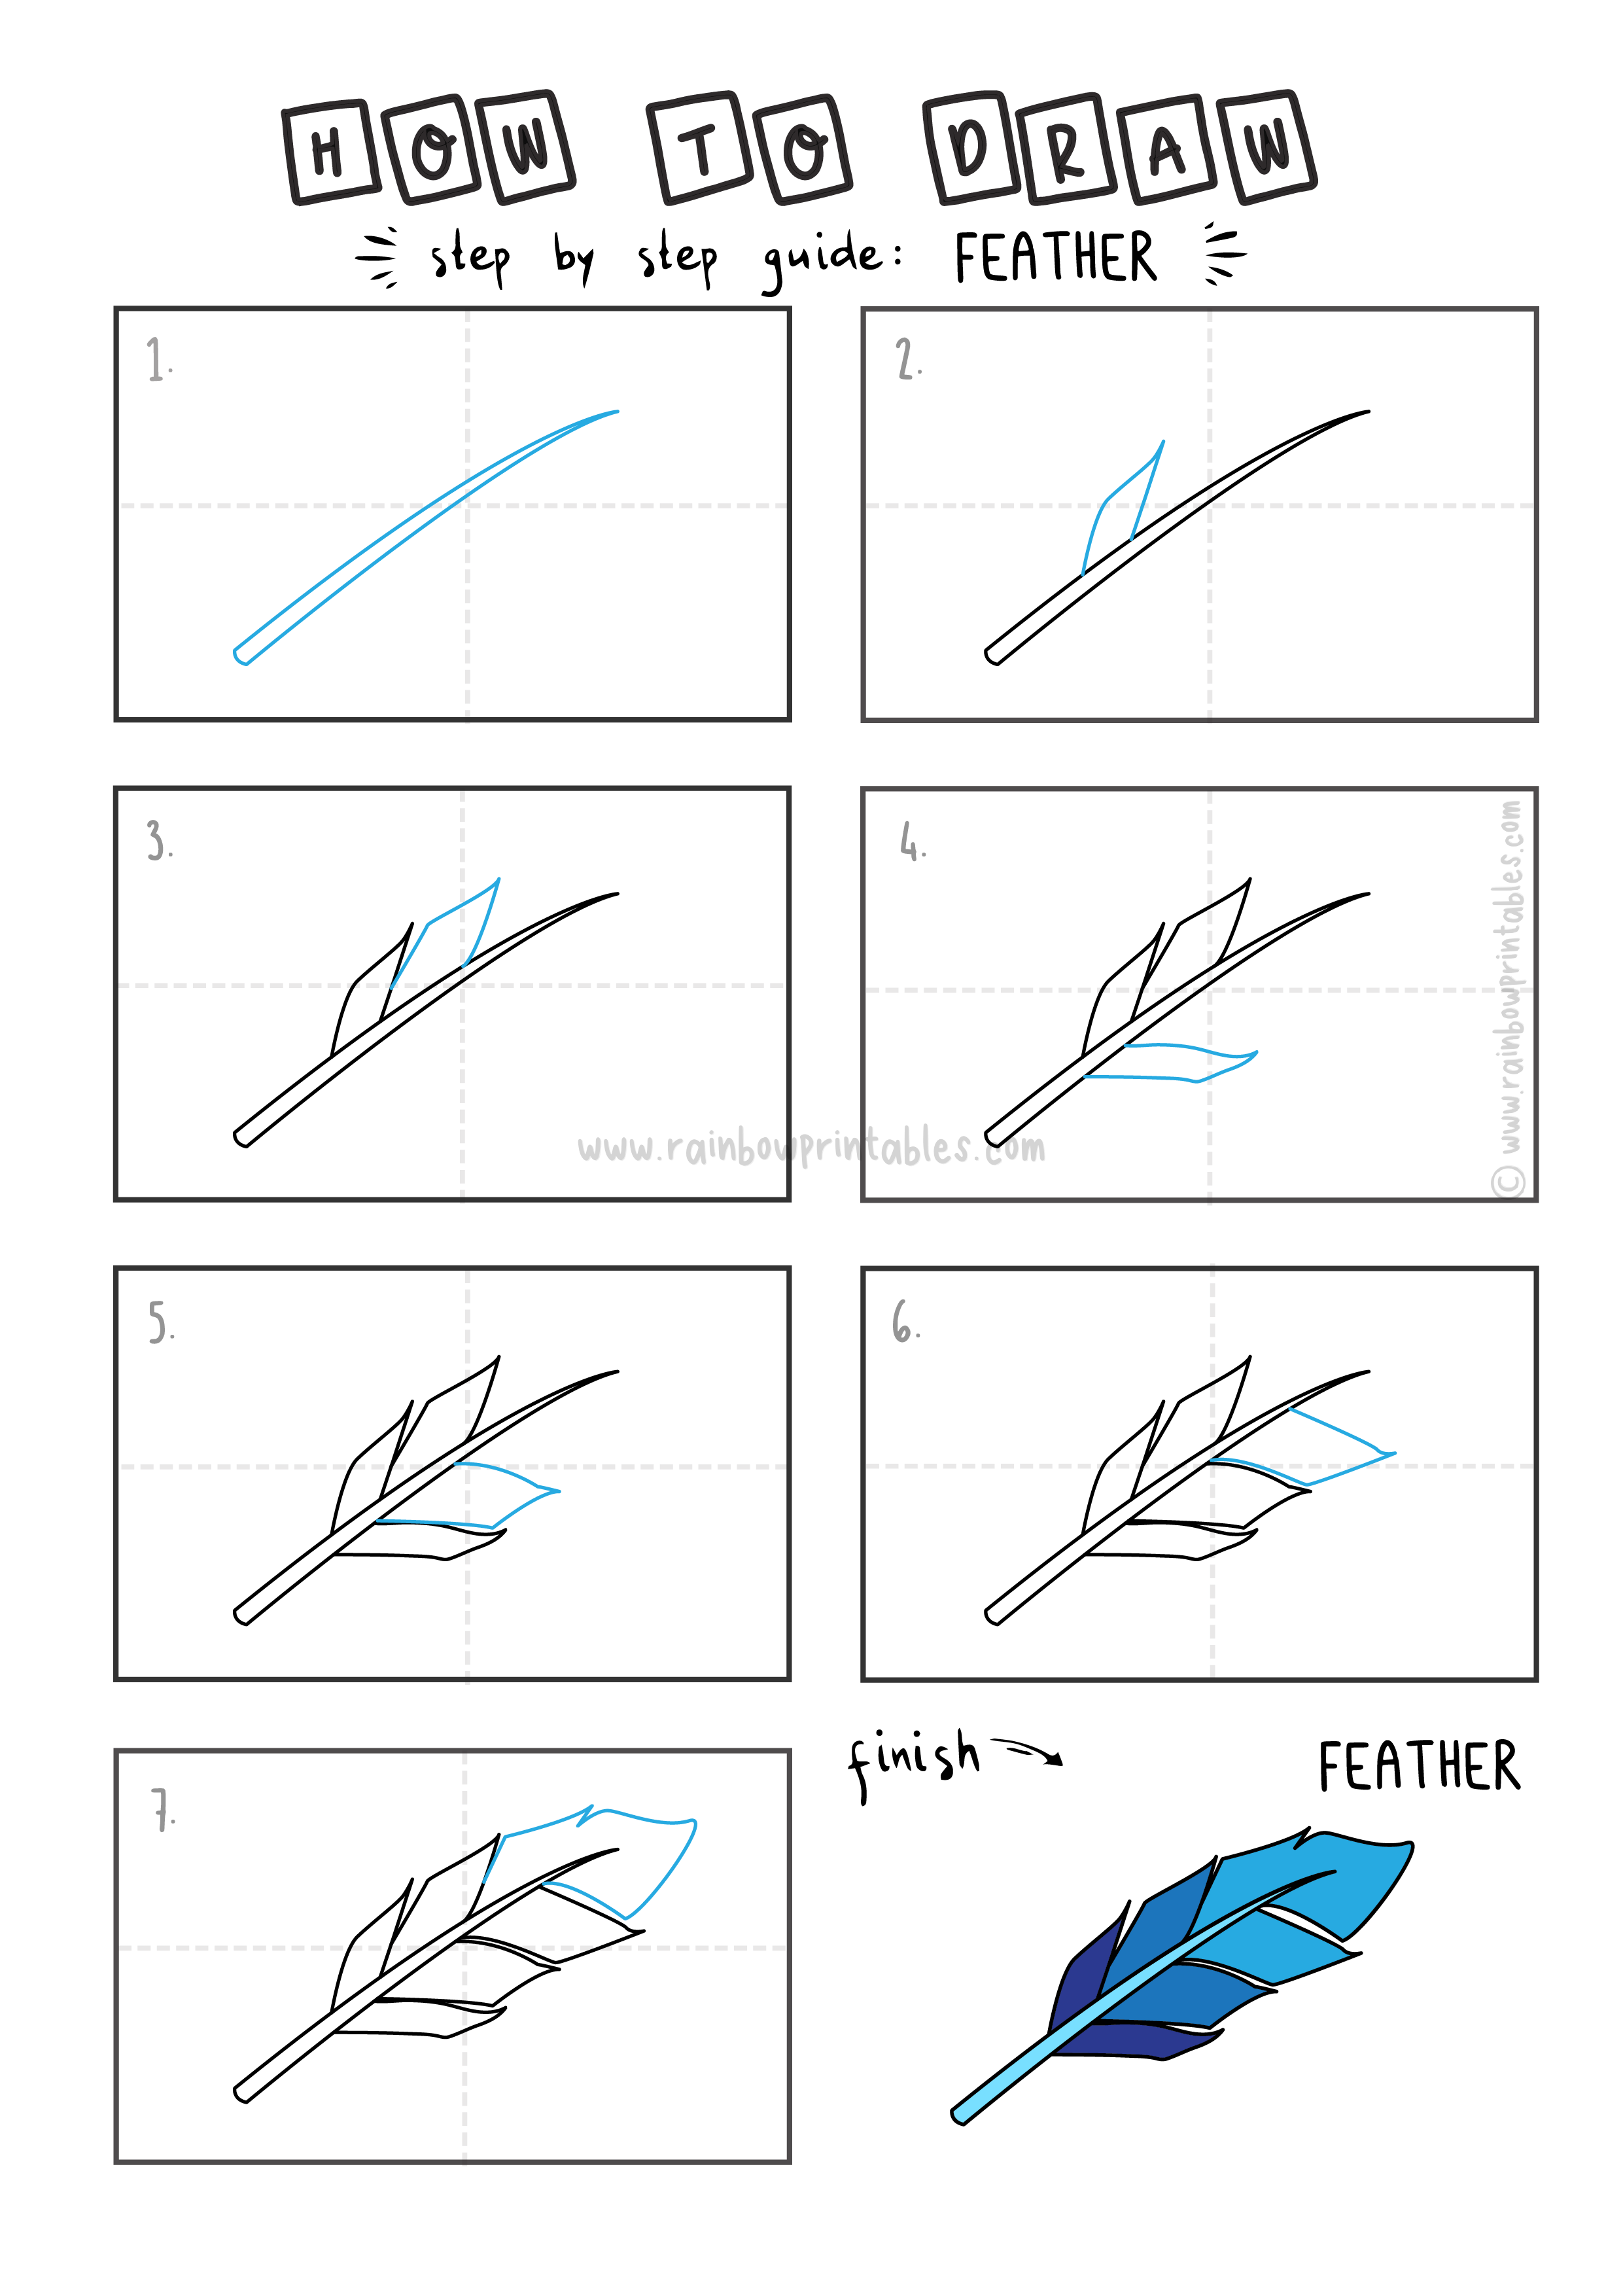 How To Draw a BLUE BIRD FEATHER Step By Step Easy Simple Drawing Guide for Kids